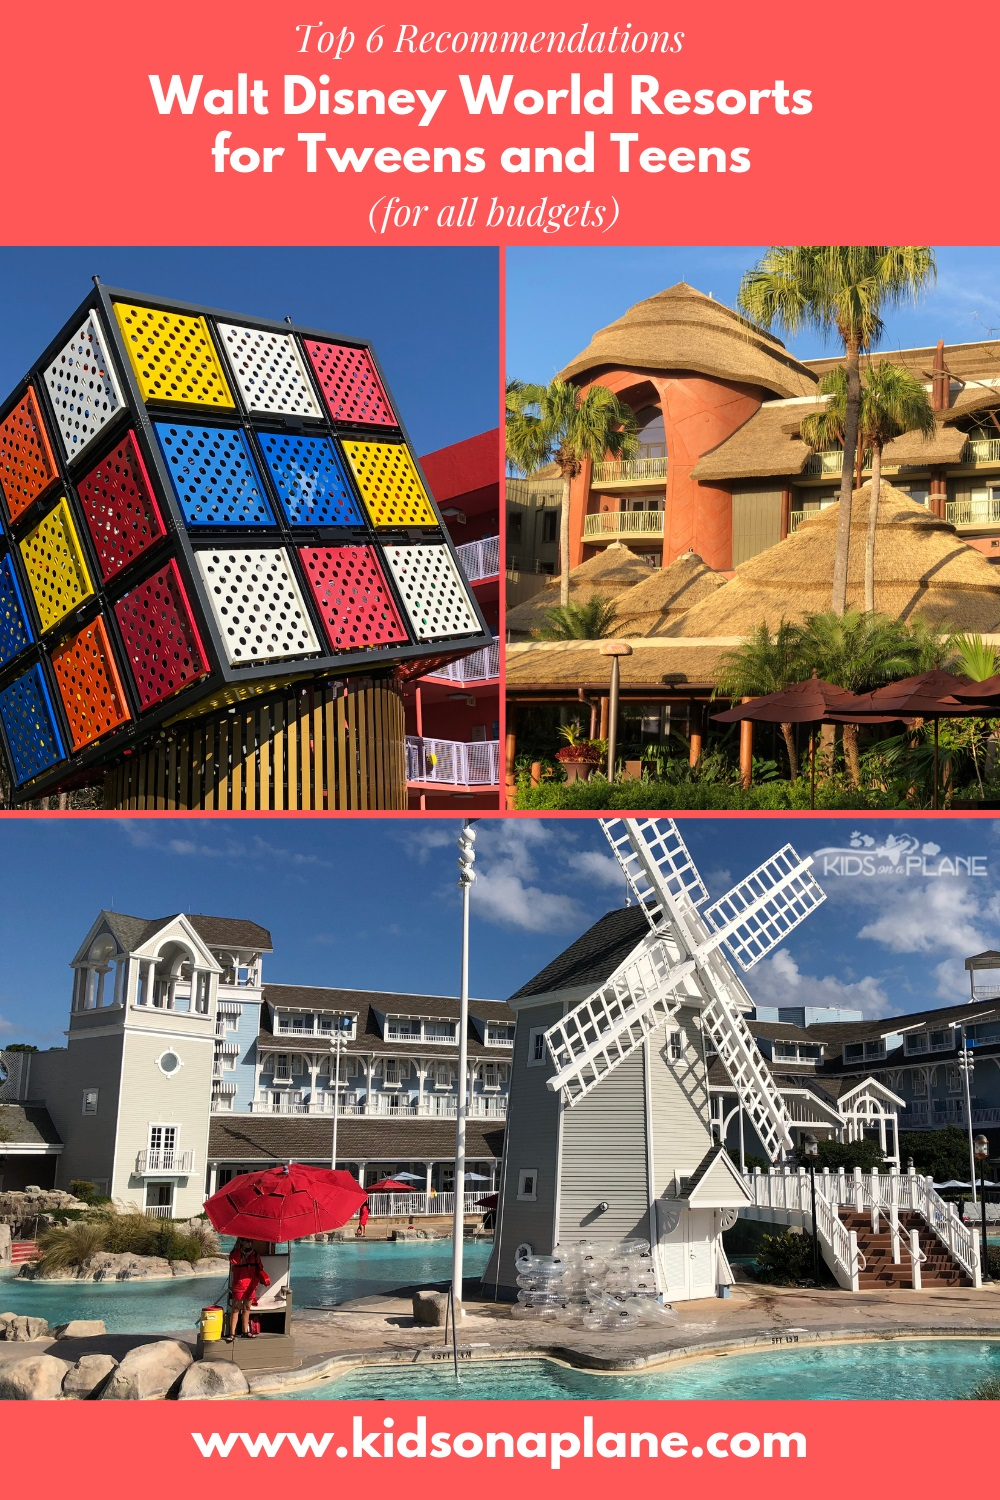 Best Walt Disney World Resort Hotels for Tweens and Teens and all budgets